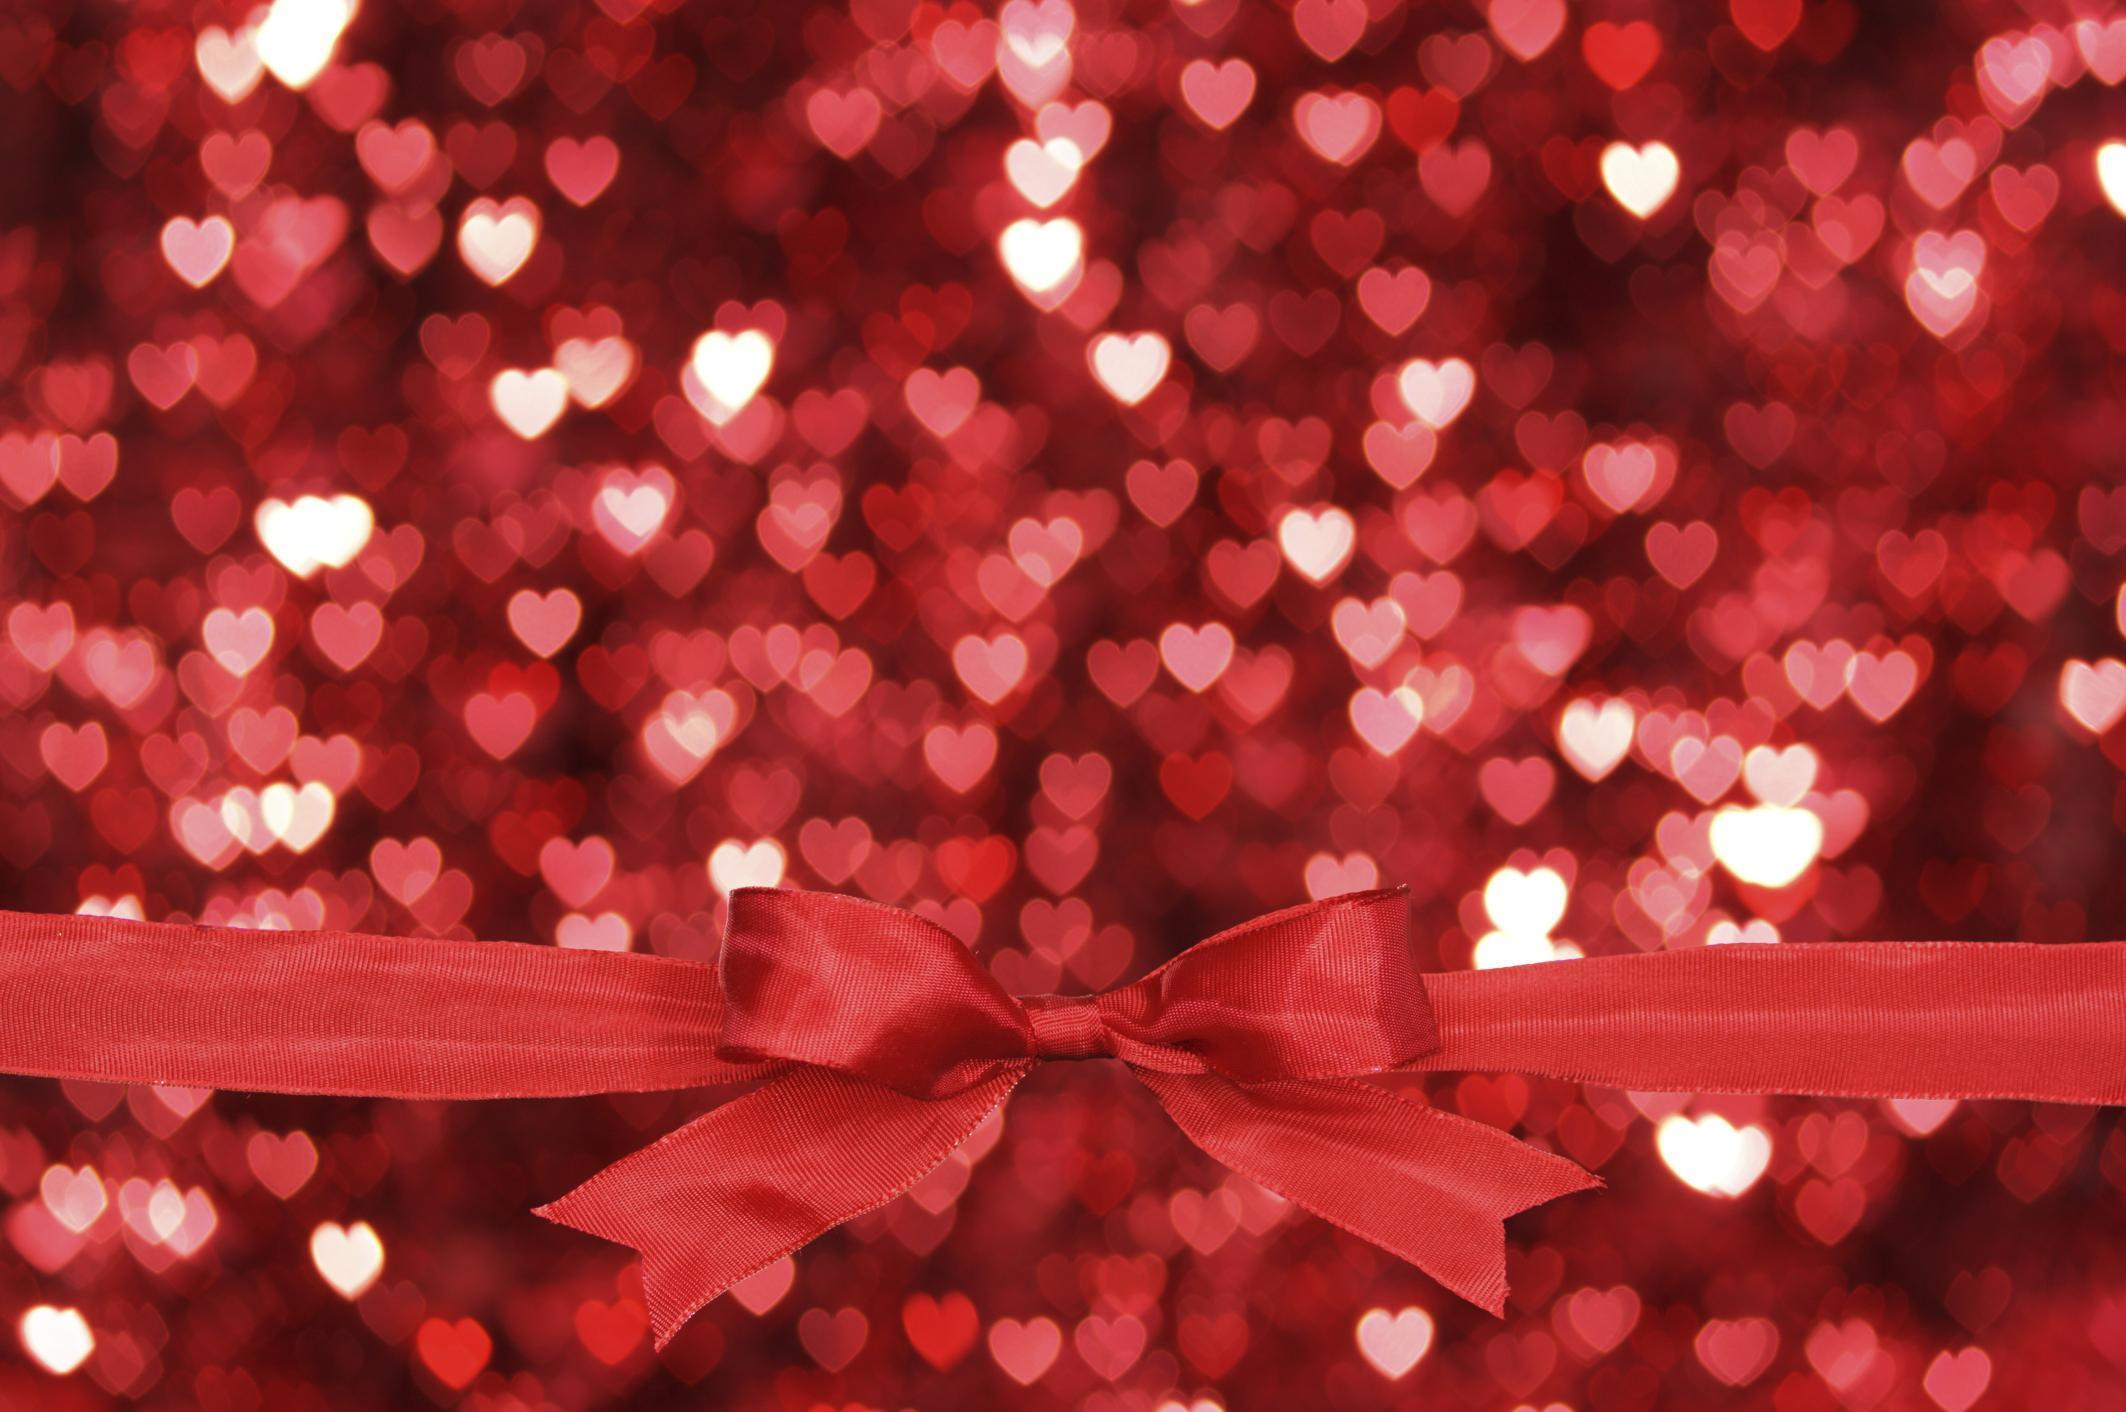 Xmas Love Wallpapers : christmas Love Wallpapers - Wallpaper cave